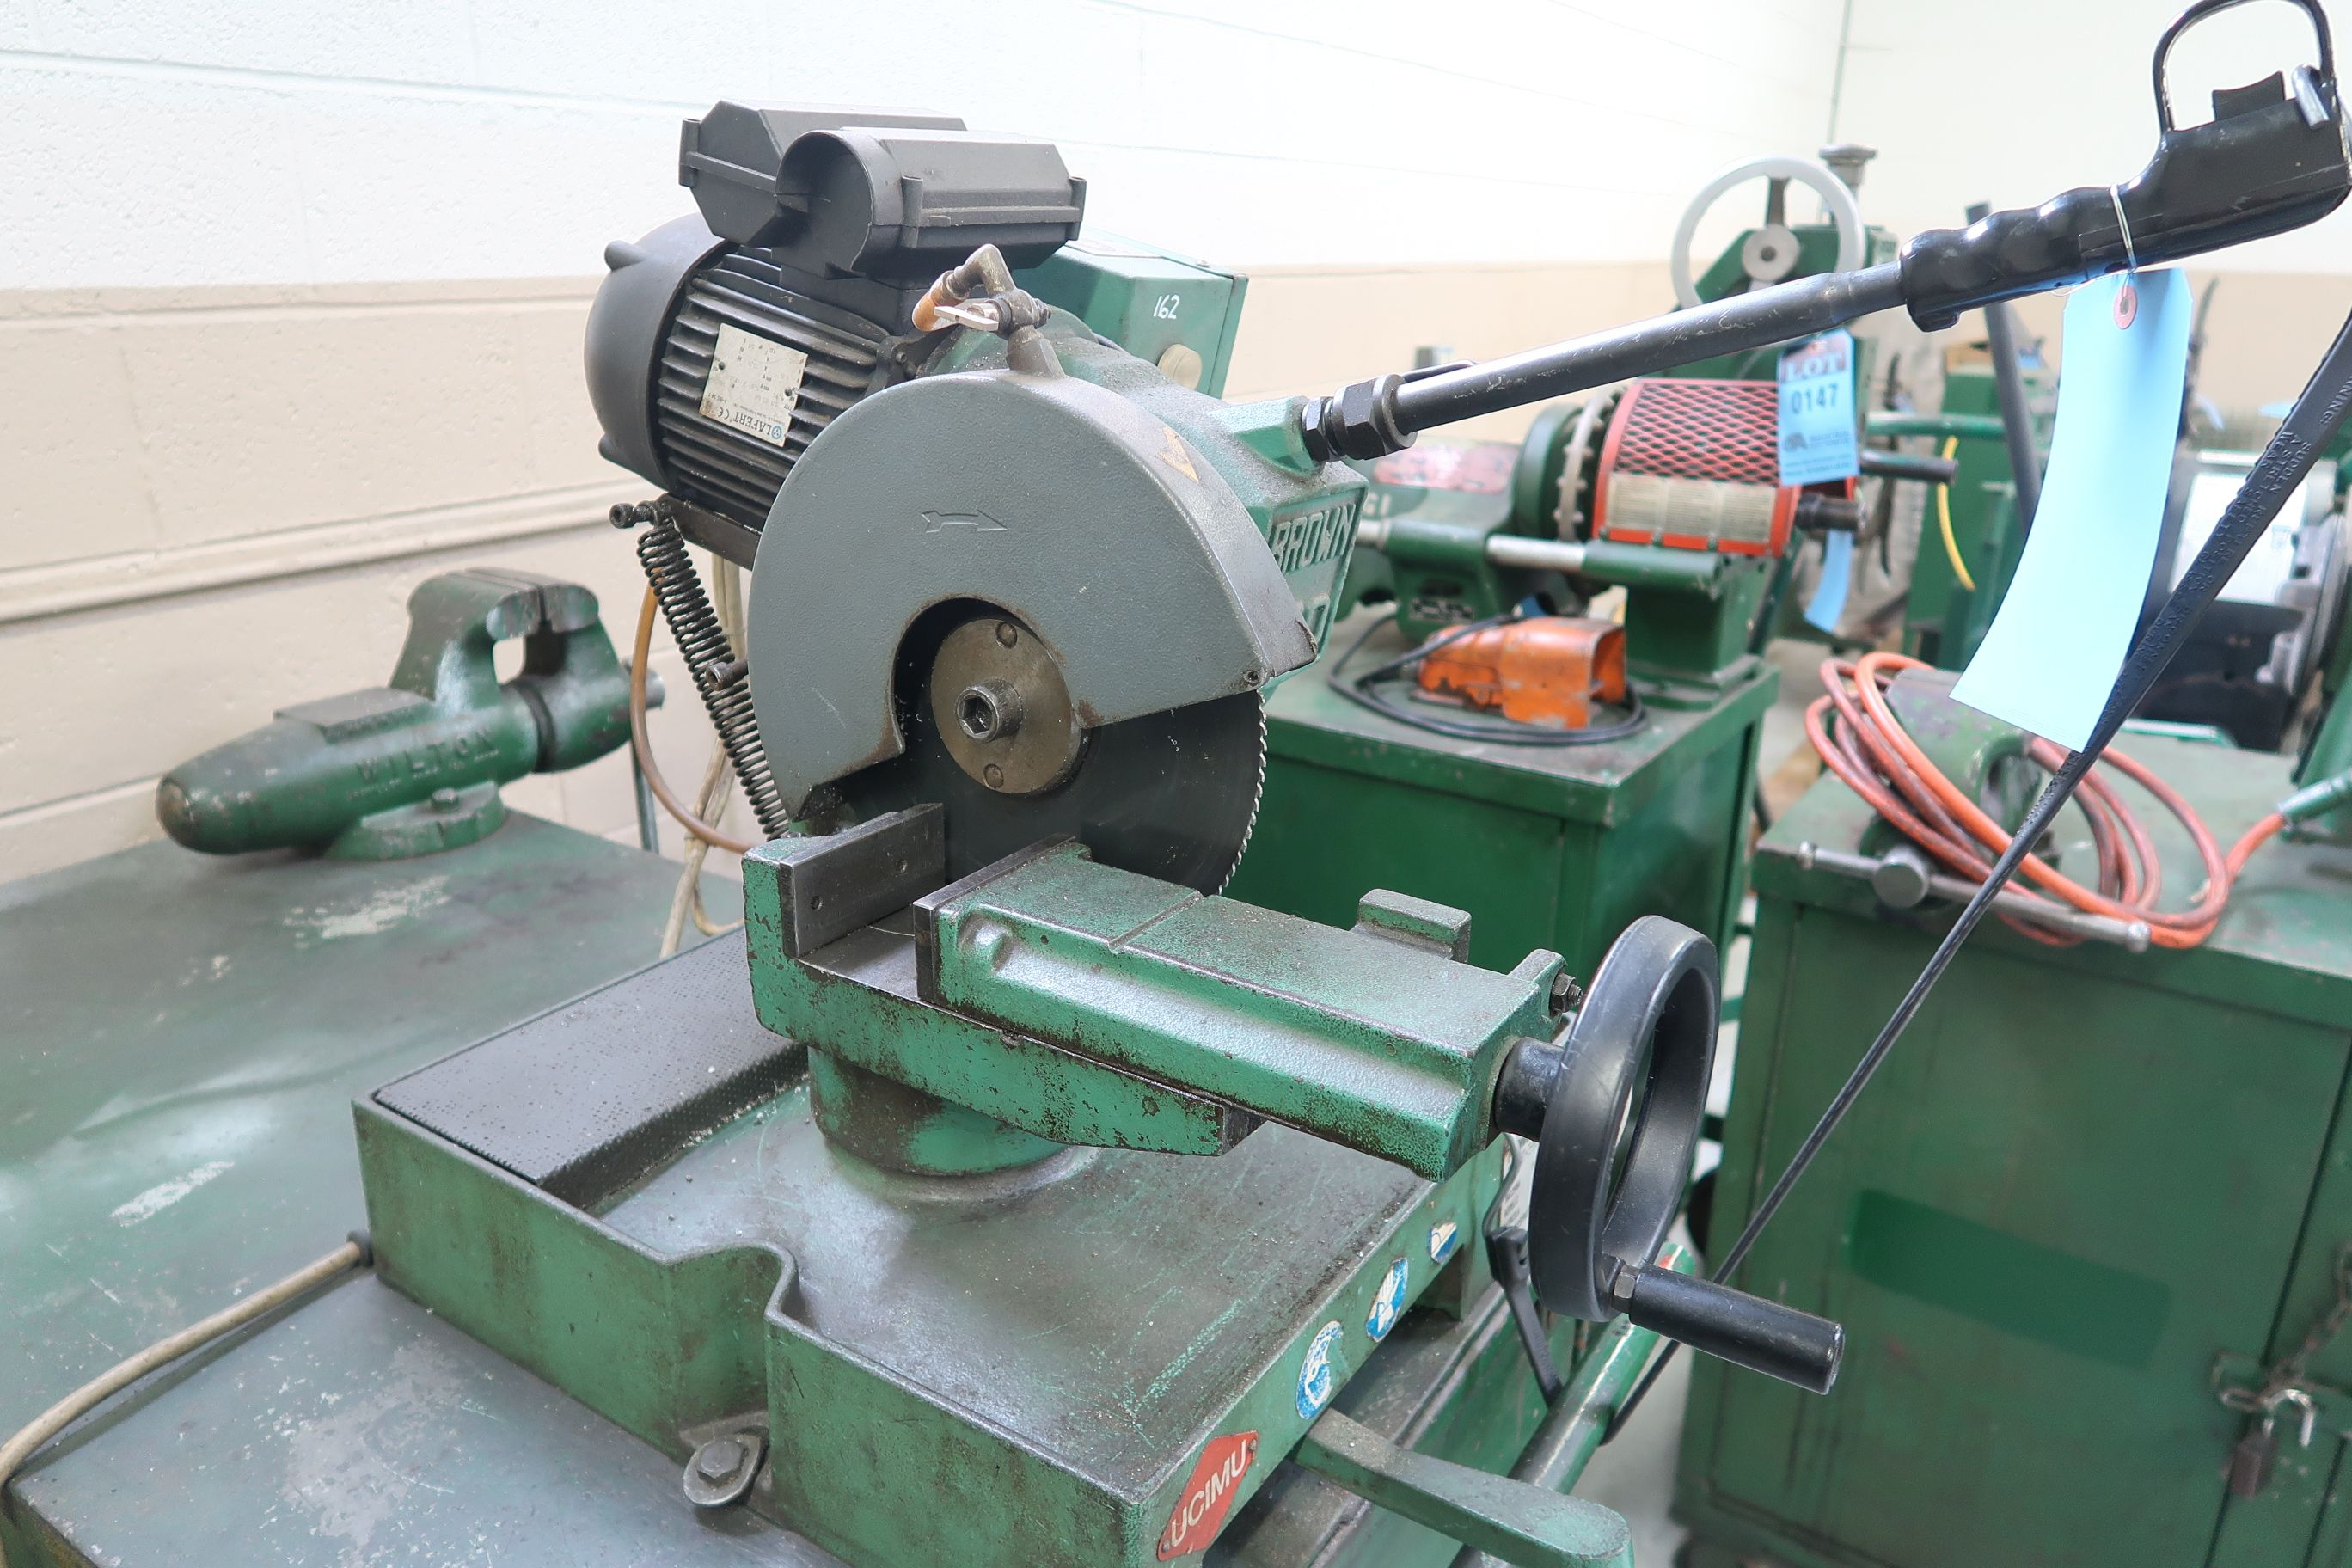 BROWN MODEL 250 TABLE MOUNTED SAW; S/N 034442, MOUNTED ON PORTABLE JOBBOX WITH 4-1/2 BENCH VISE - Image 3 of 5